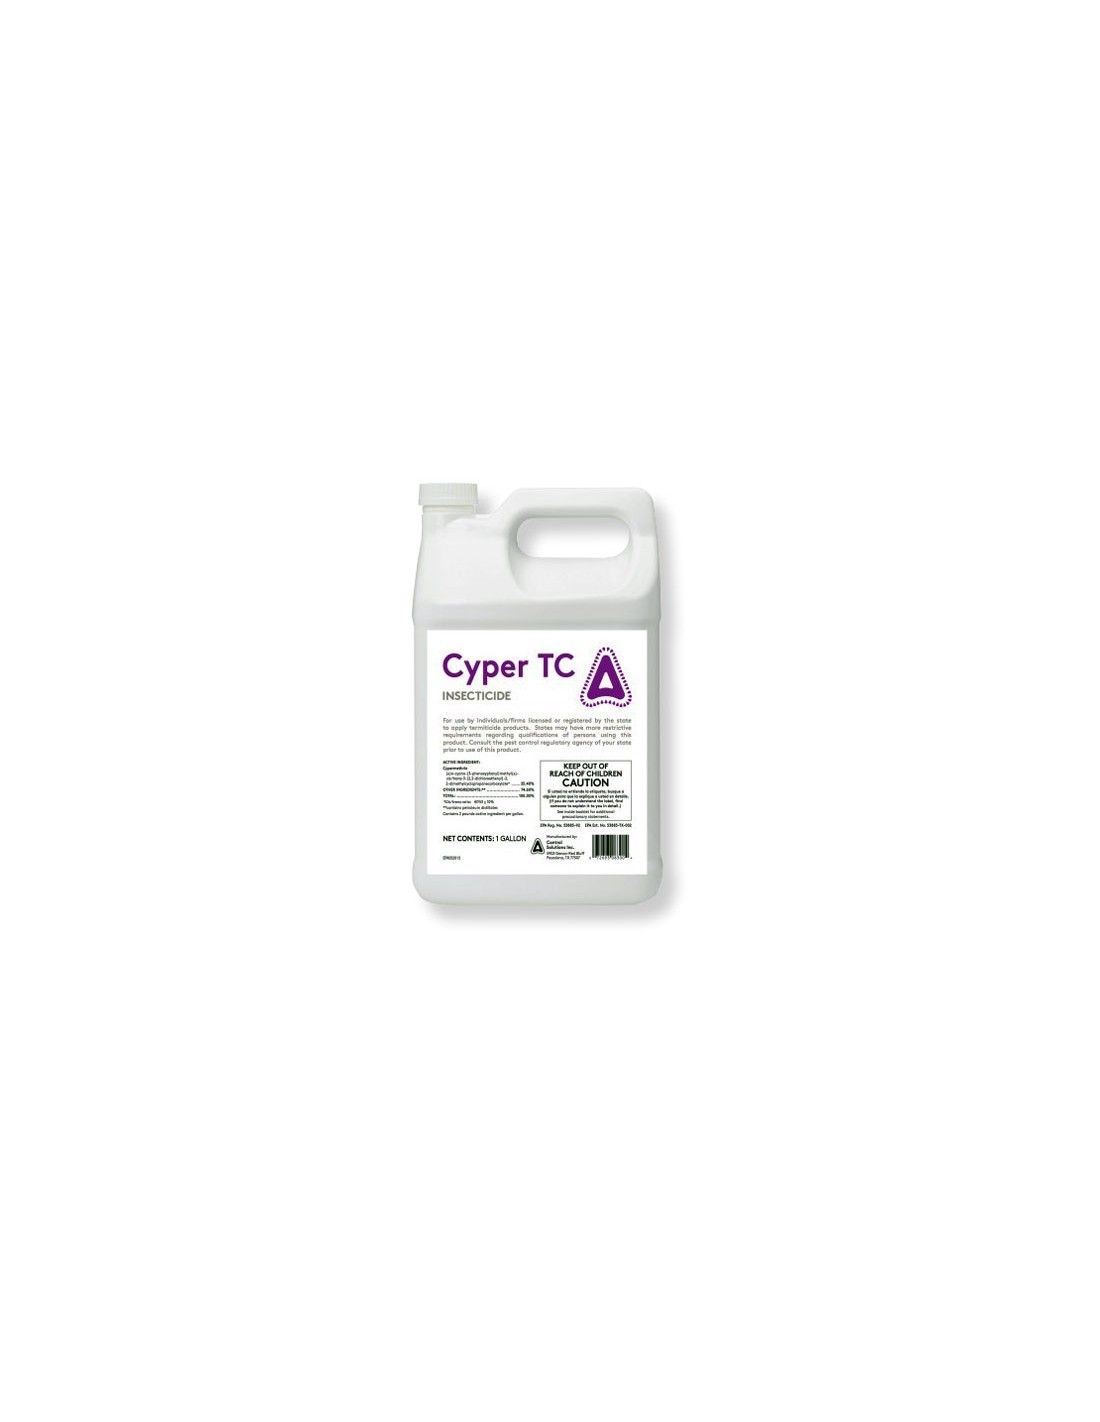 Cyper TC Insecticide Questions & Answers